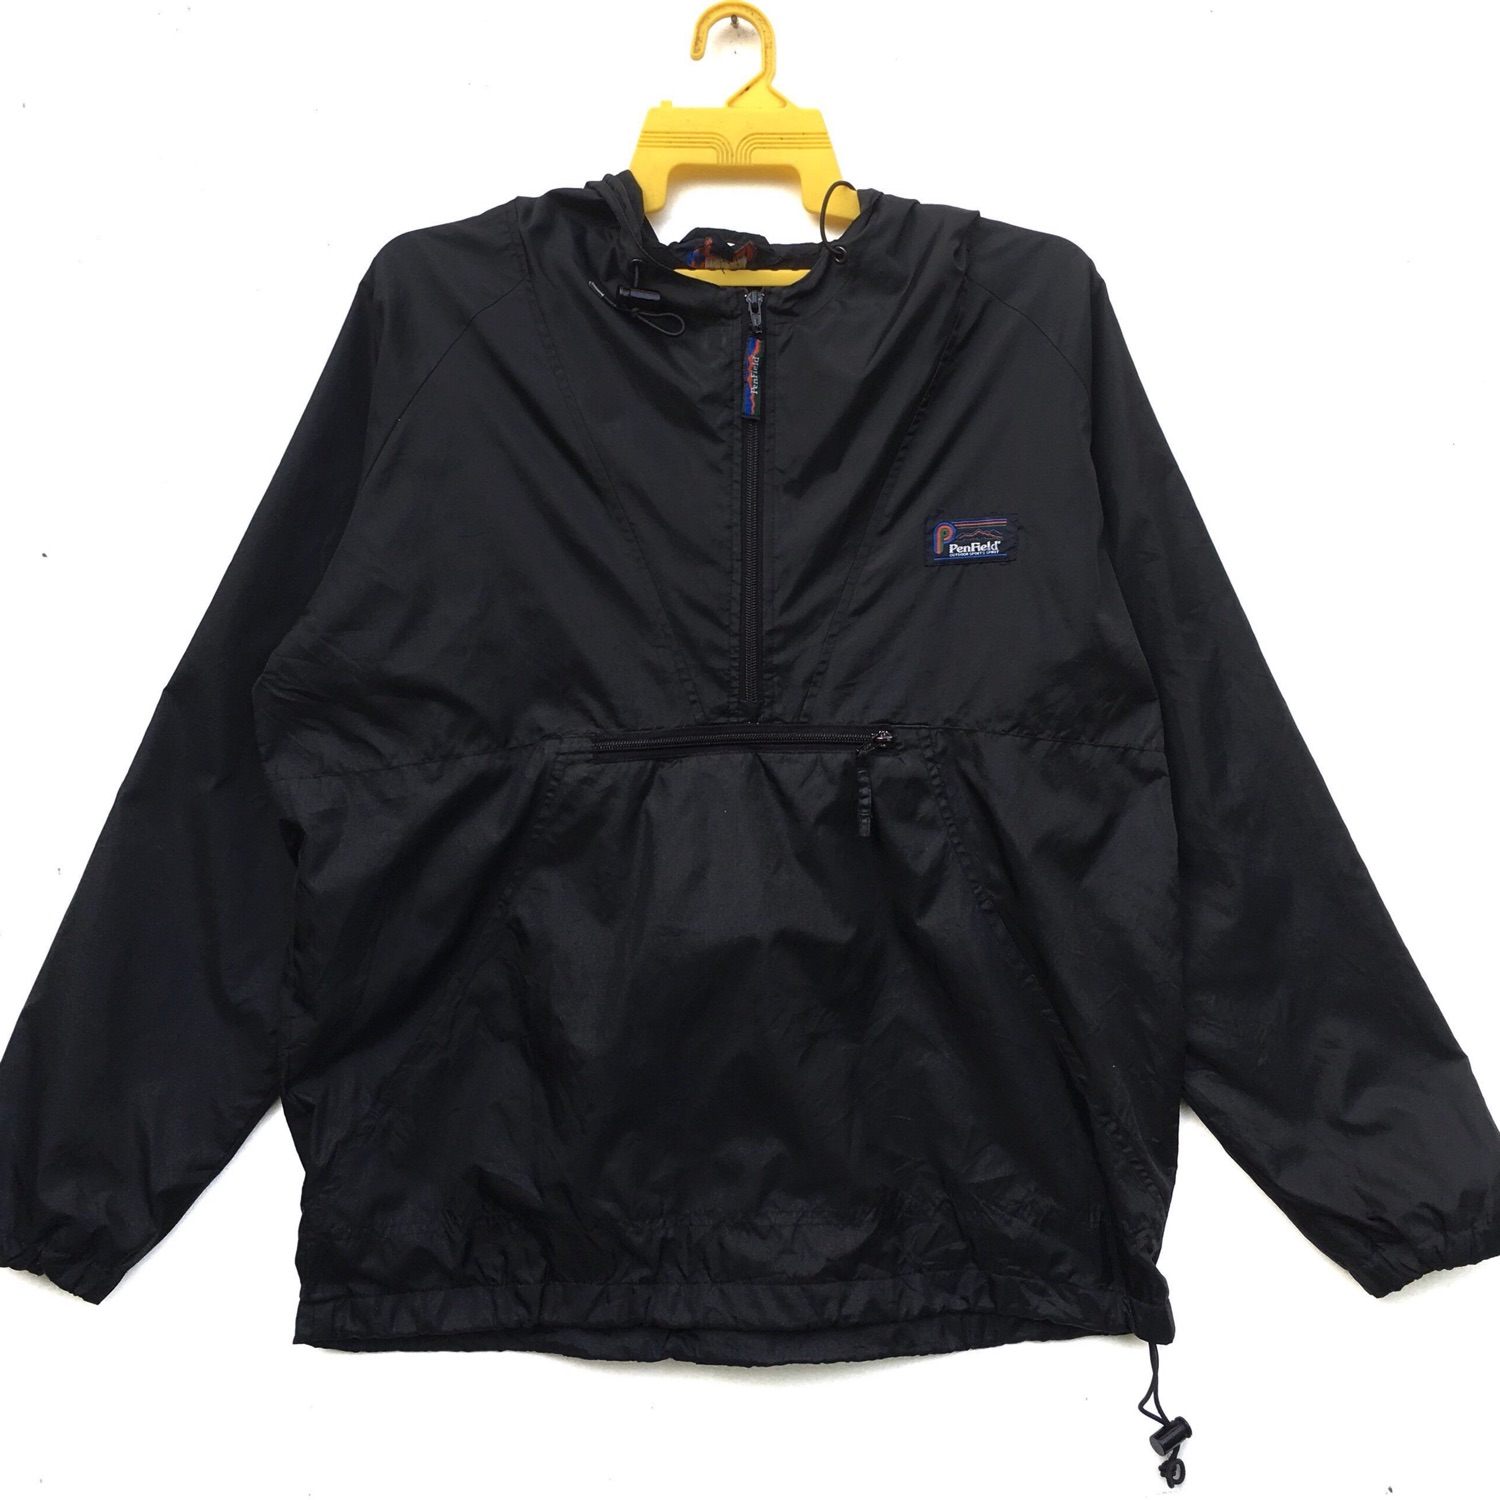 Vintage 90S Penfield Windbreaker Jacket